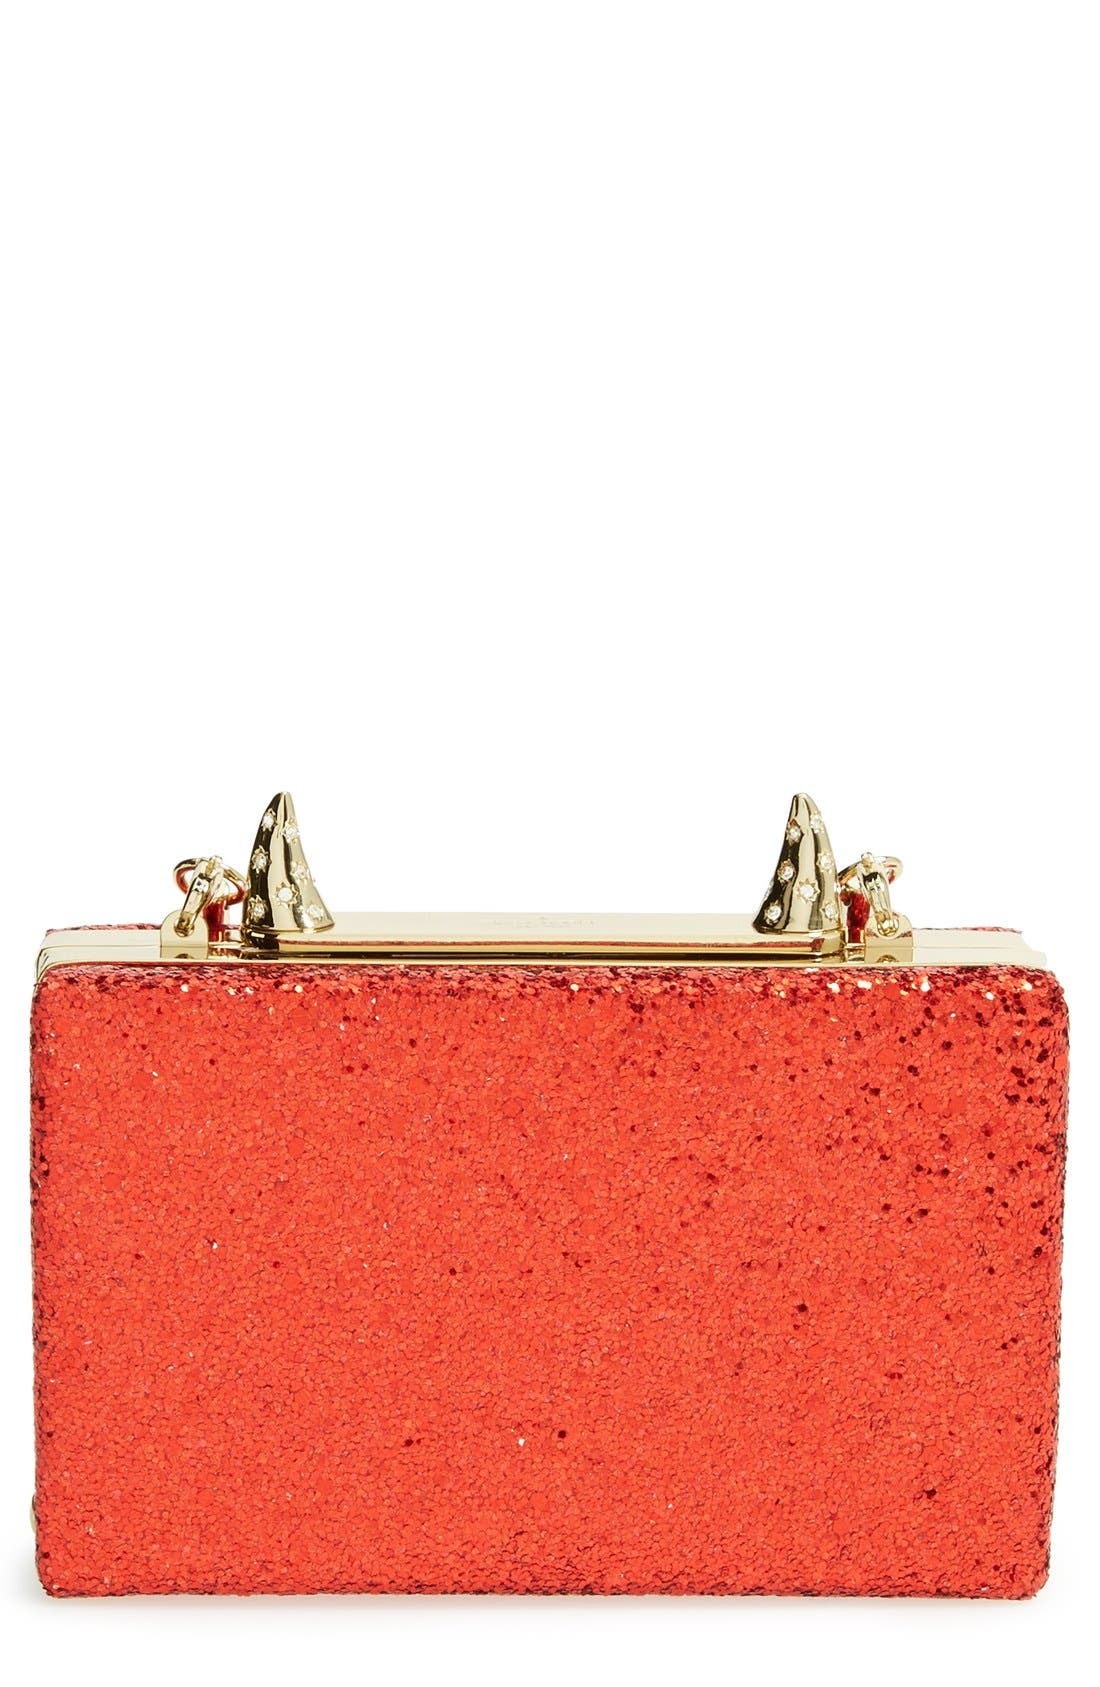 Main Image - kate spade new york 'place your bets - ravi' box clutch